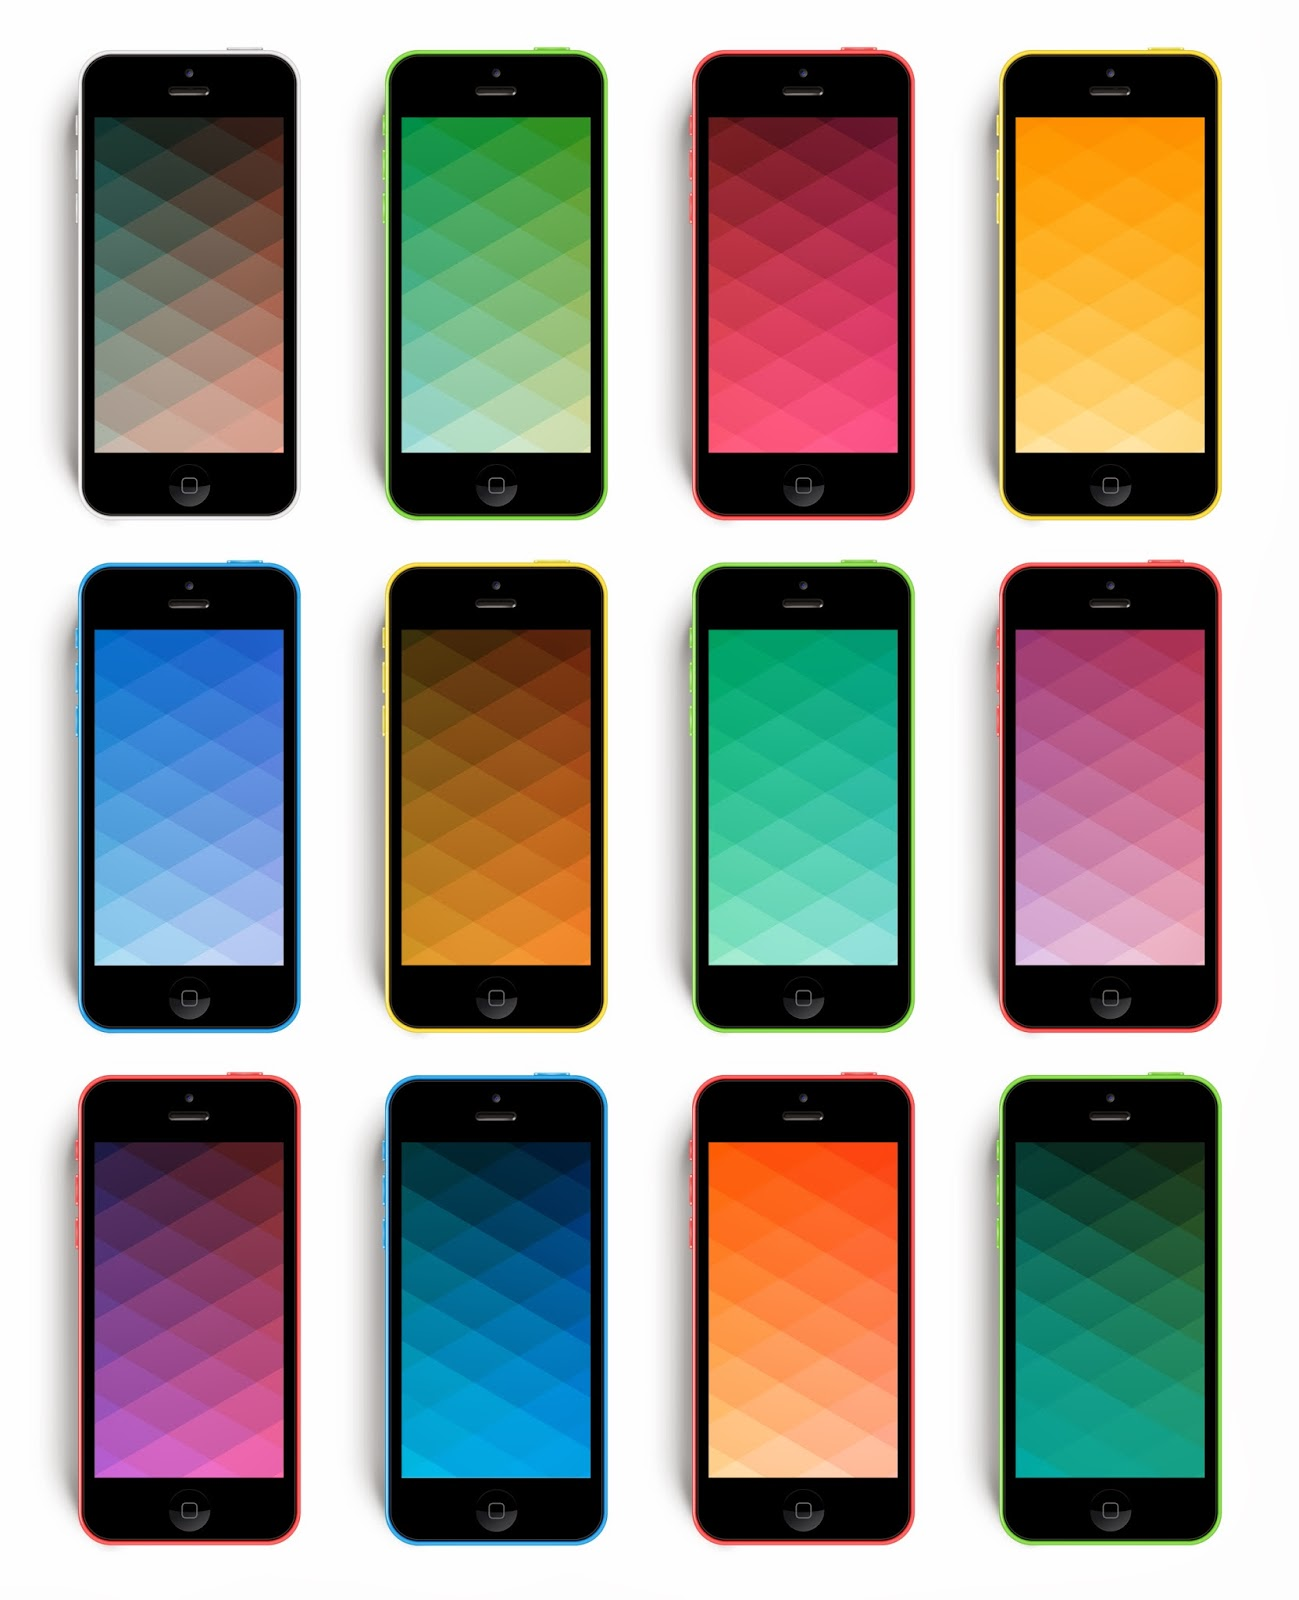 gradient wallpapers iphone 5s - photo #32